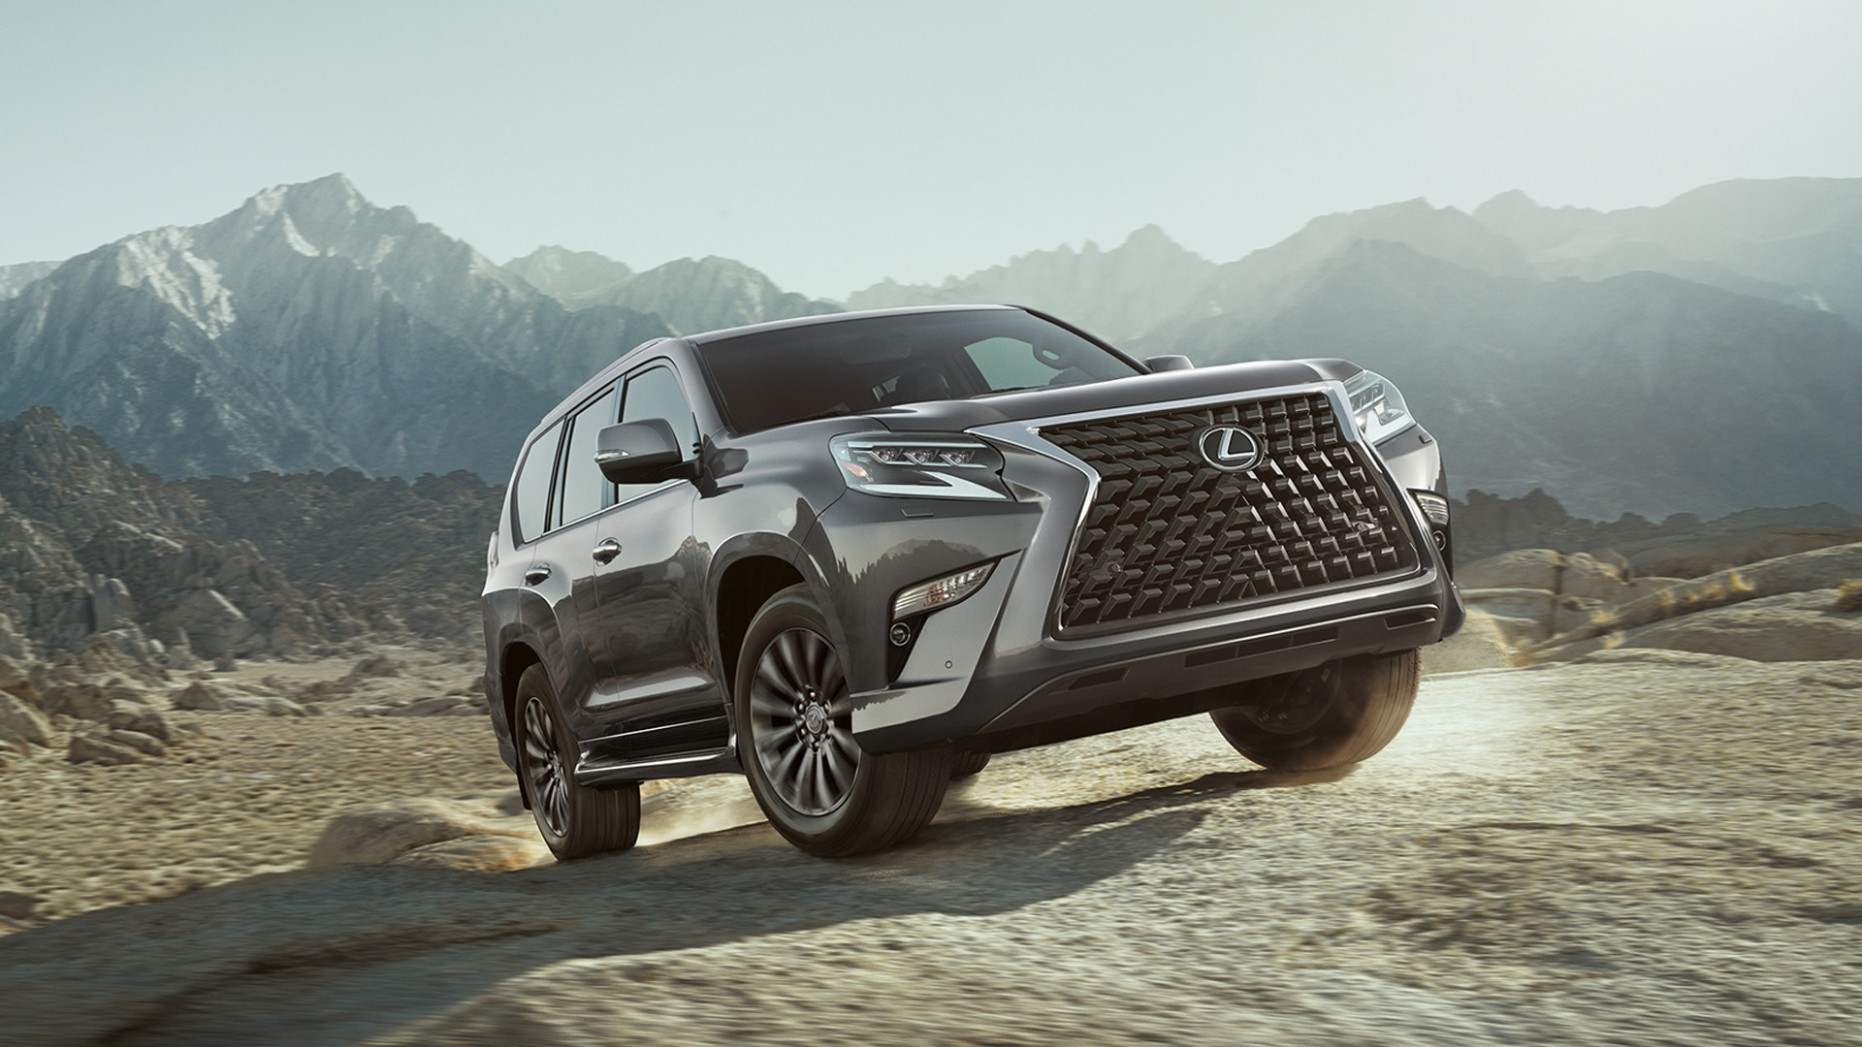 Car Spy Shots, News, Reviews, and Insights - Motor Authority | 2020 Lexus Gx 460